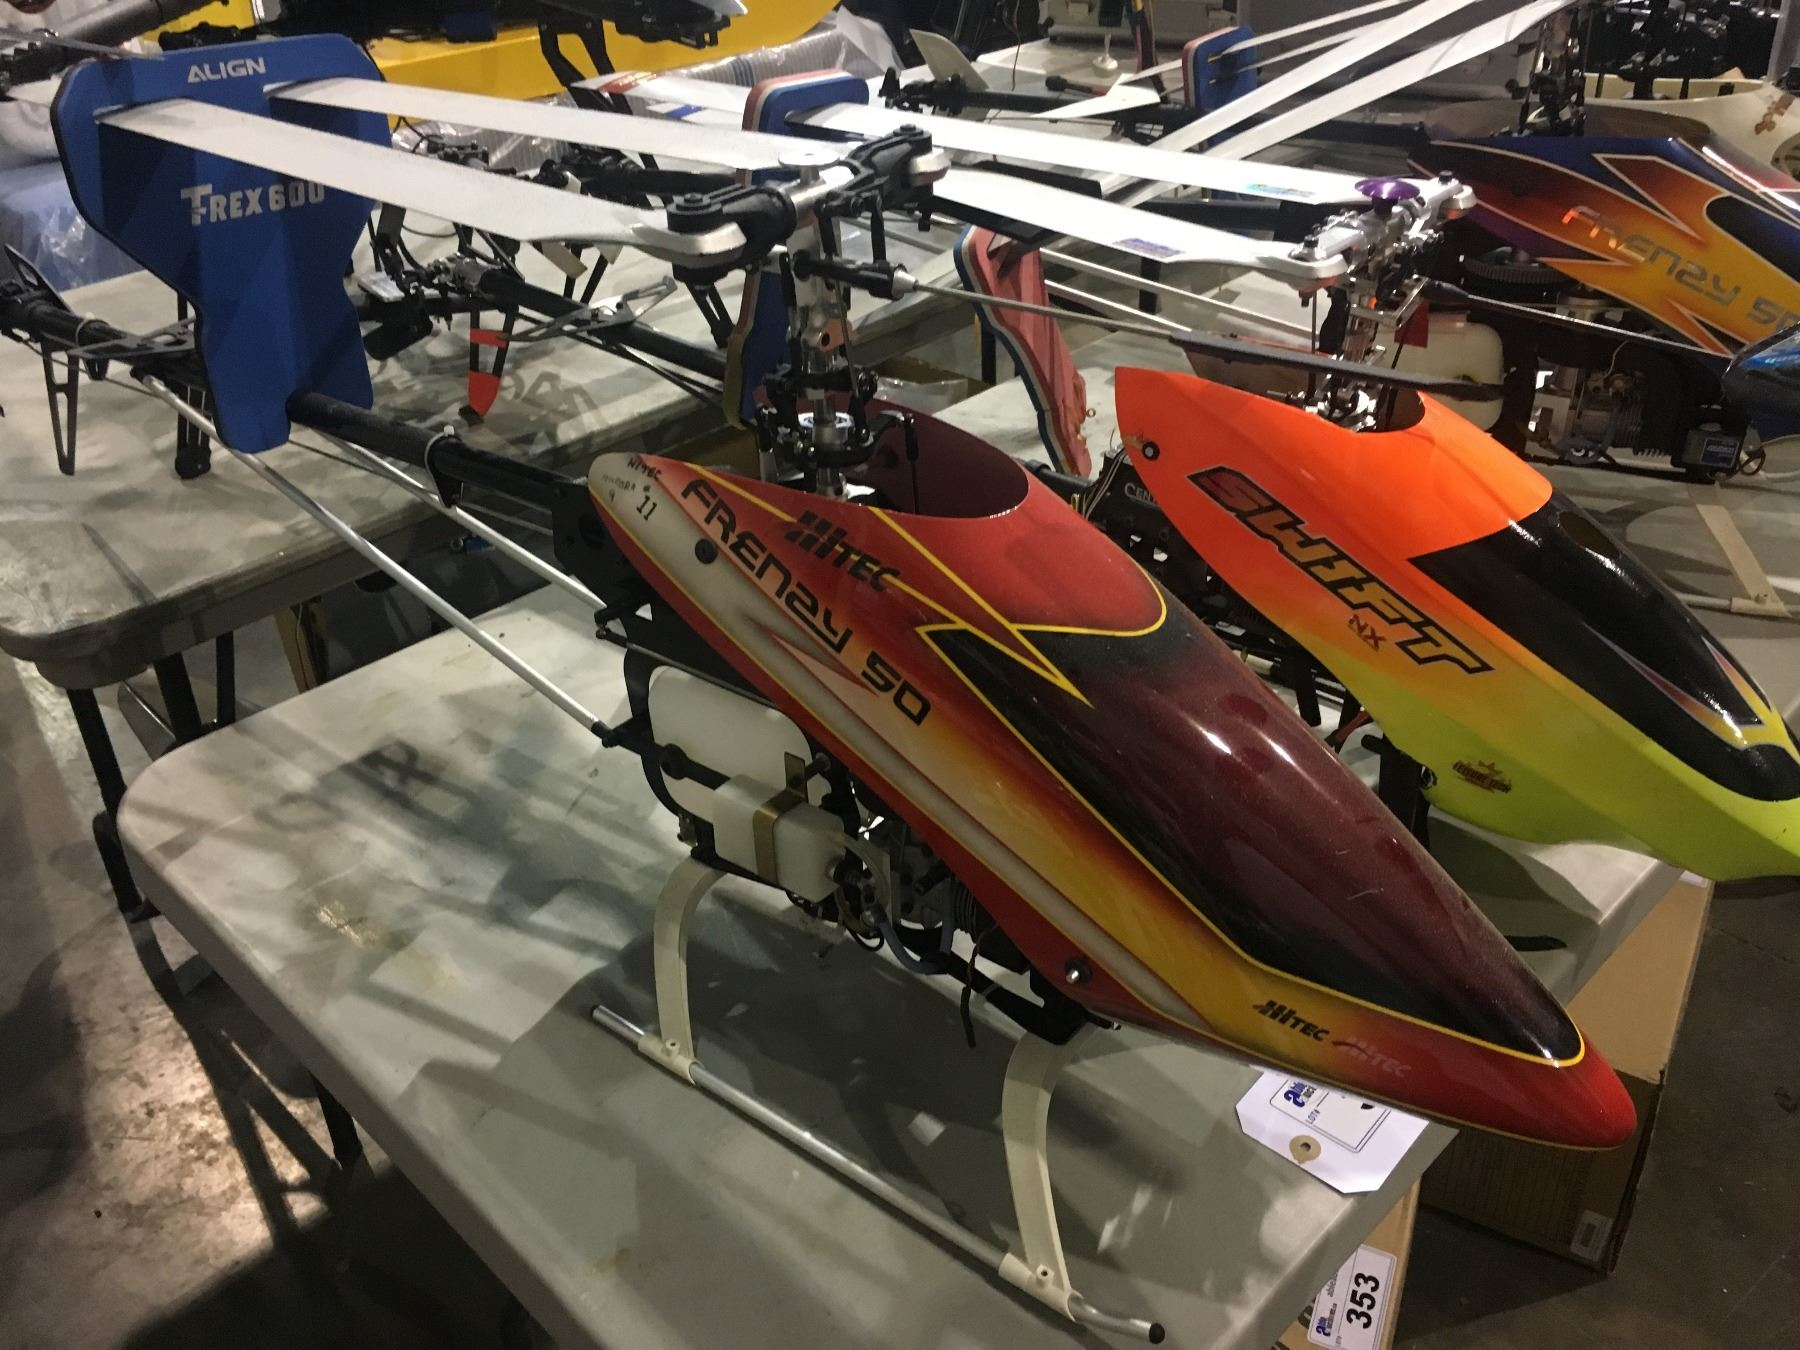 large hitec frenay 50 gas powered rc helicopter - approx 4 ft